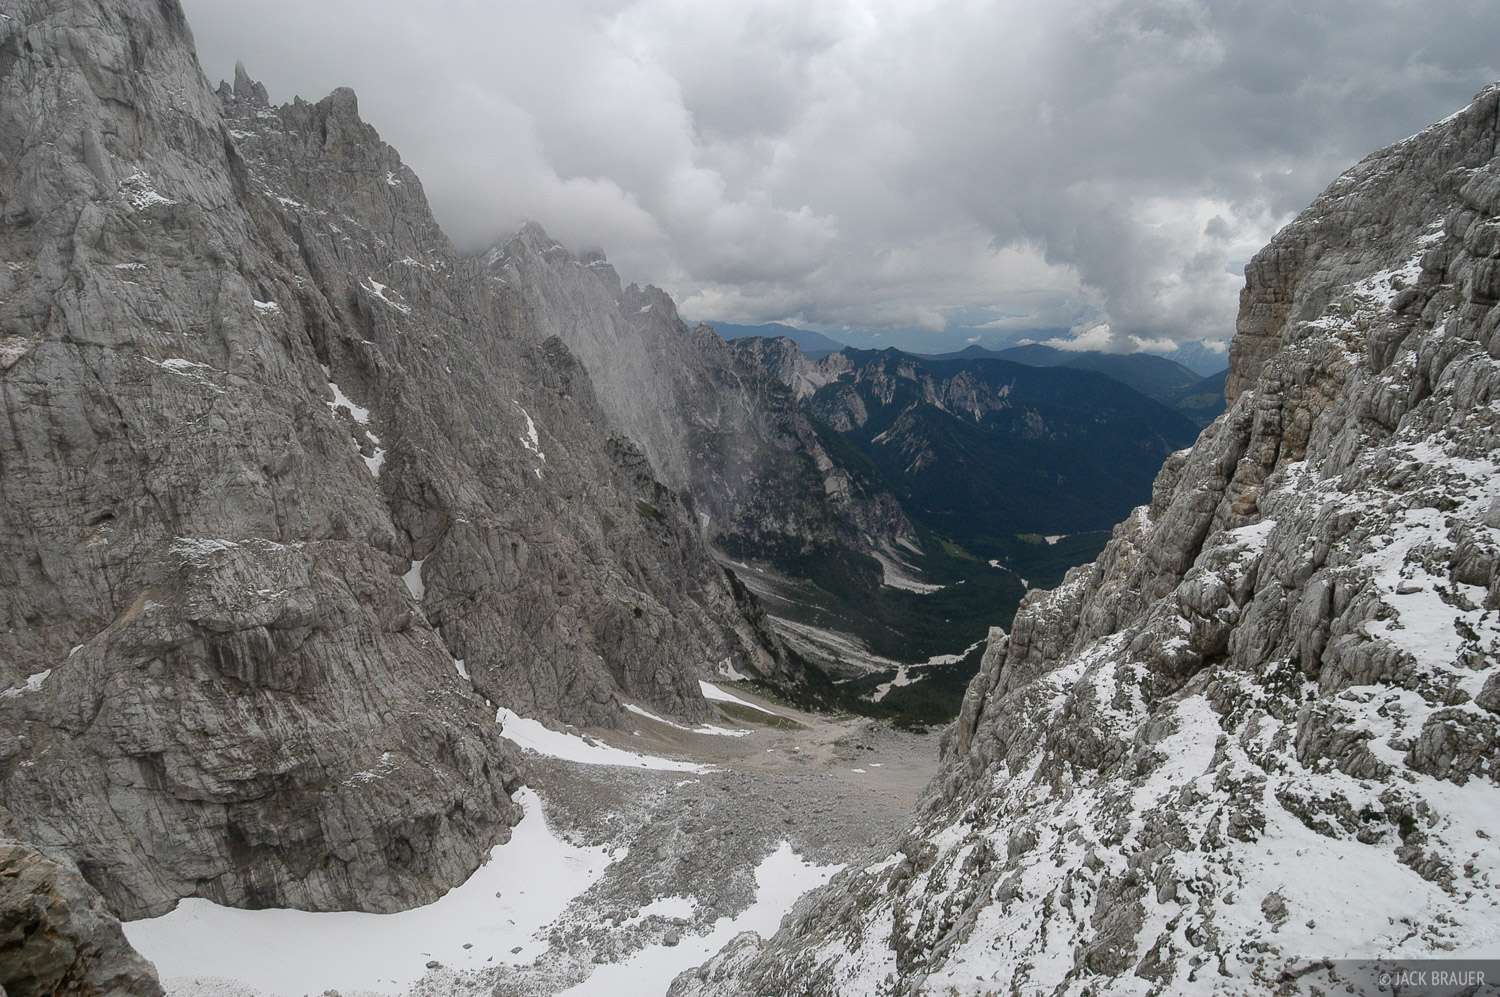 Looking down the Krnica Valley.